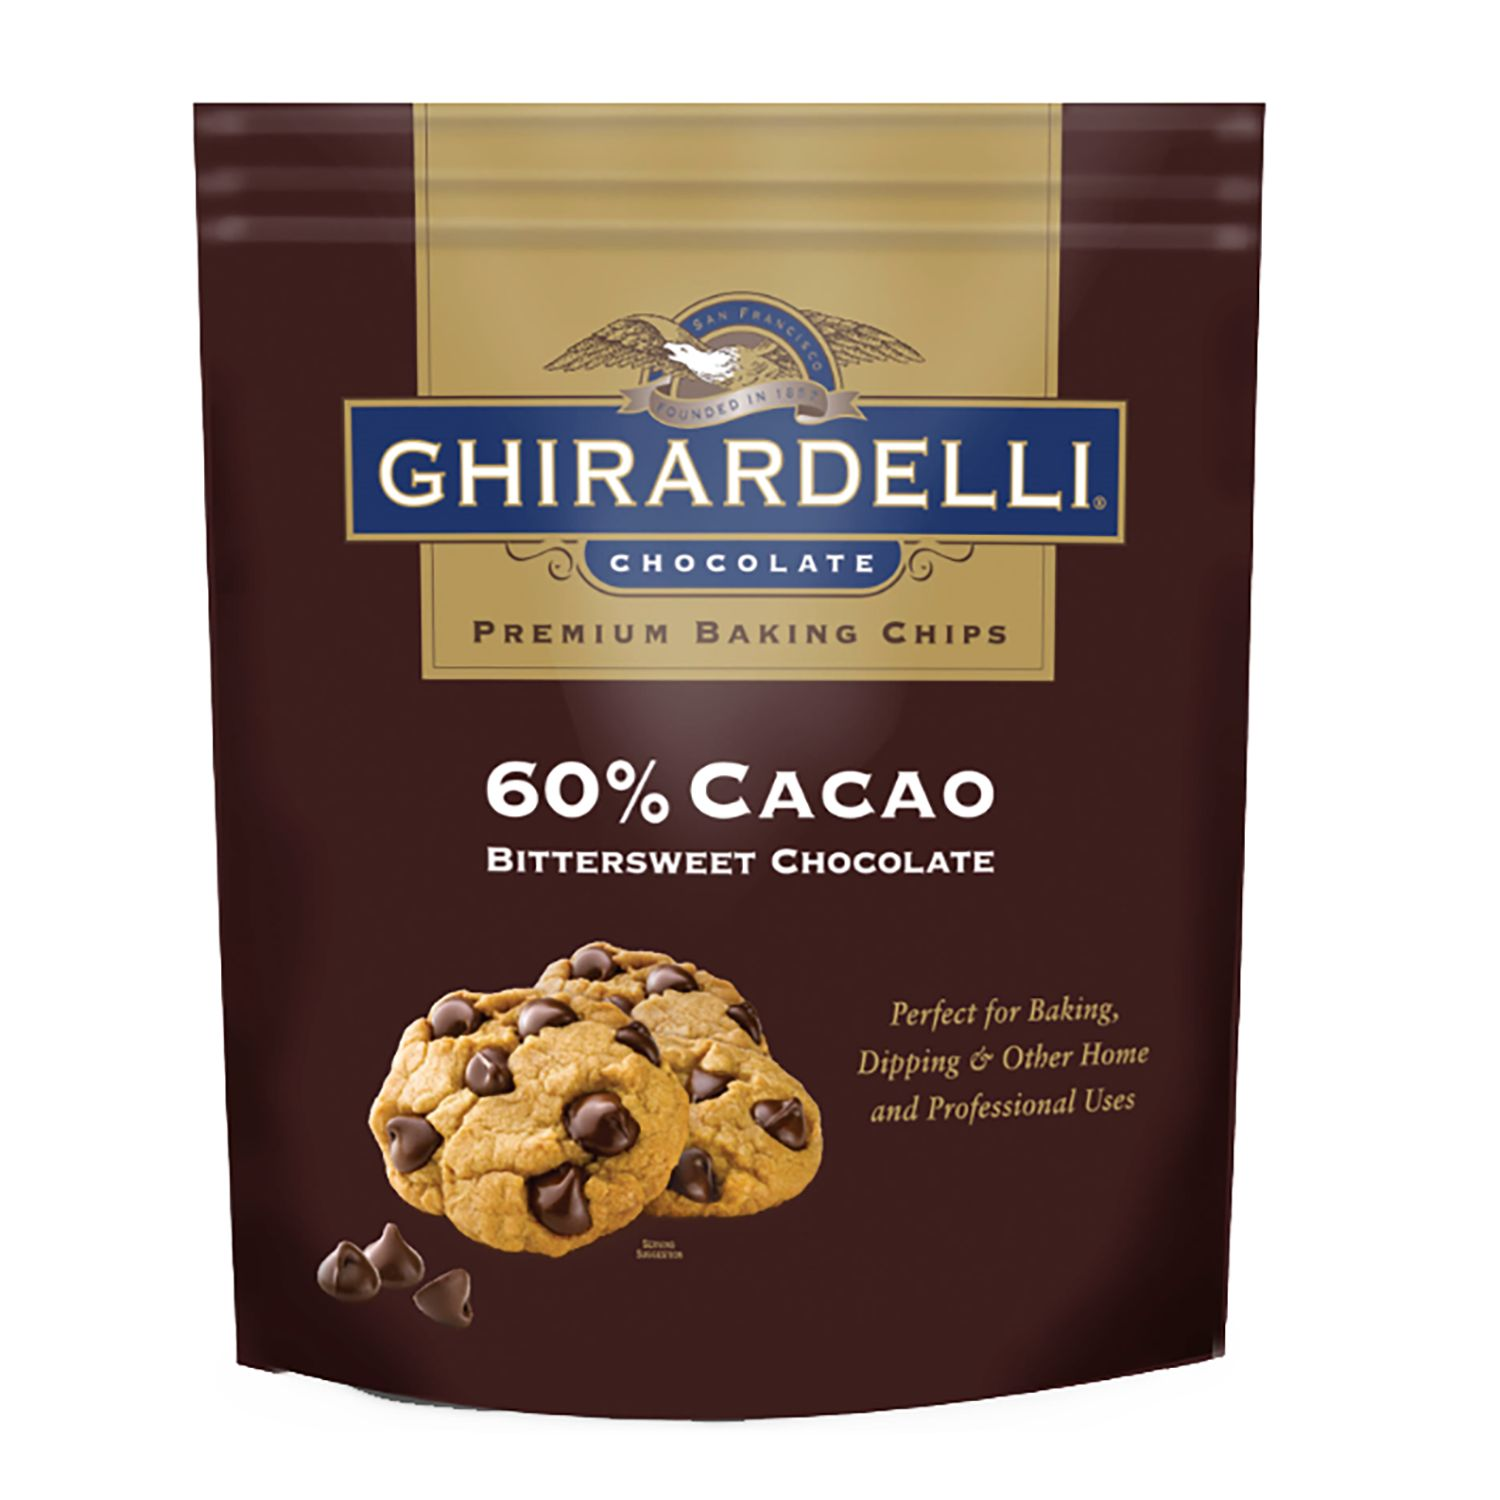 Ghirardelli 60% Cacao Bittersweet Chocolate Baking Chips (30 oz.) by Ghirardelli Chocolate Co.